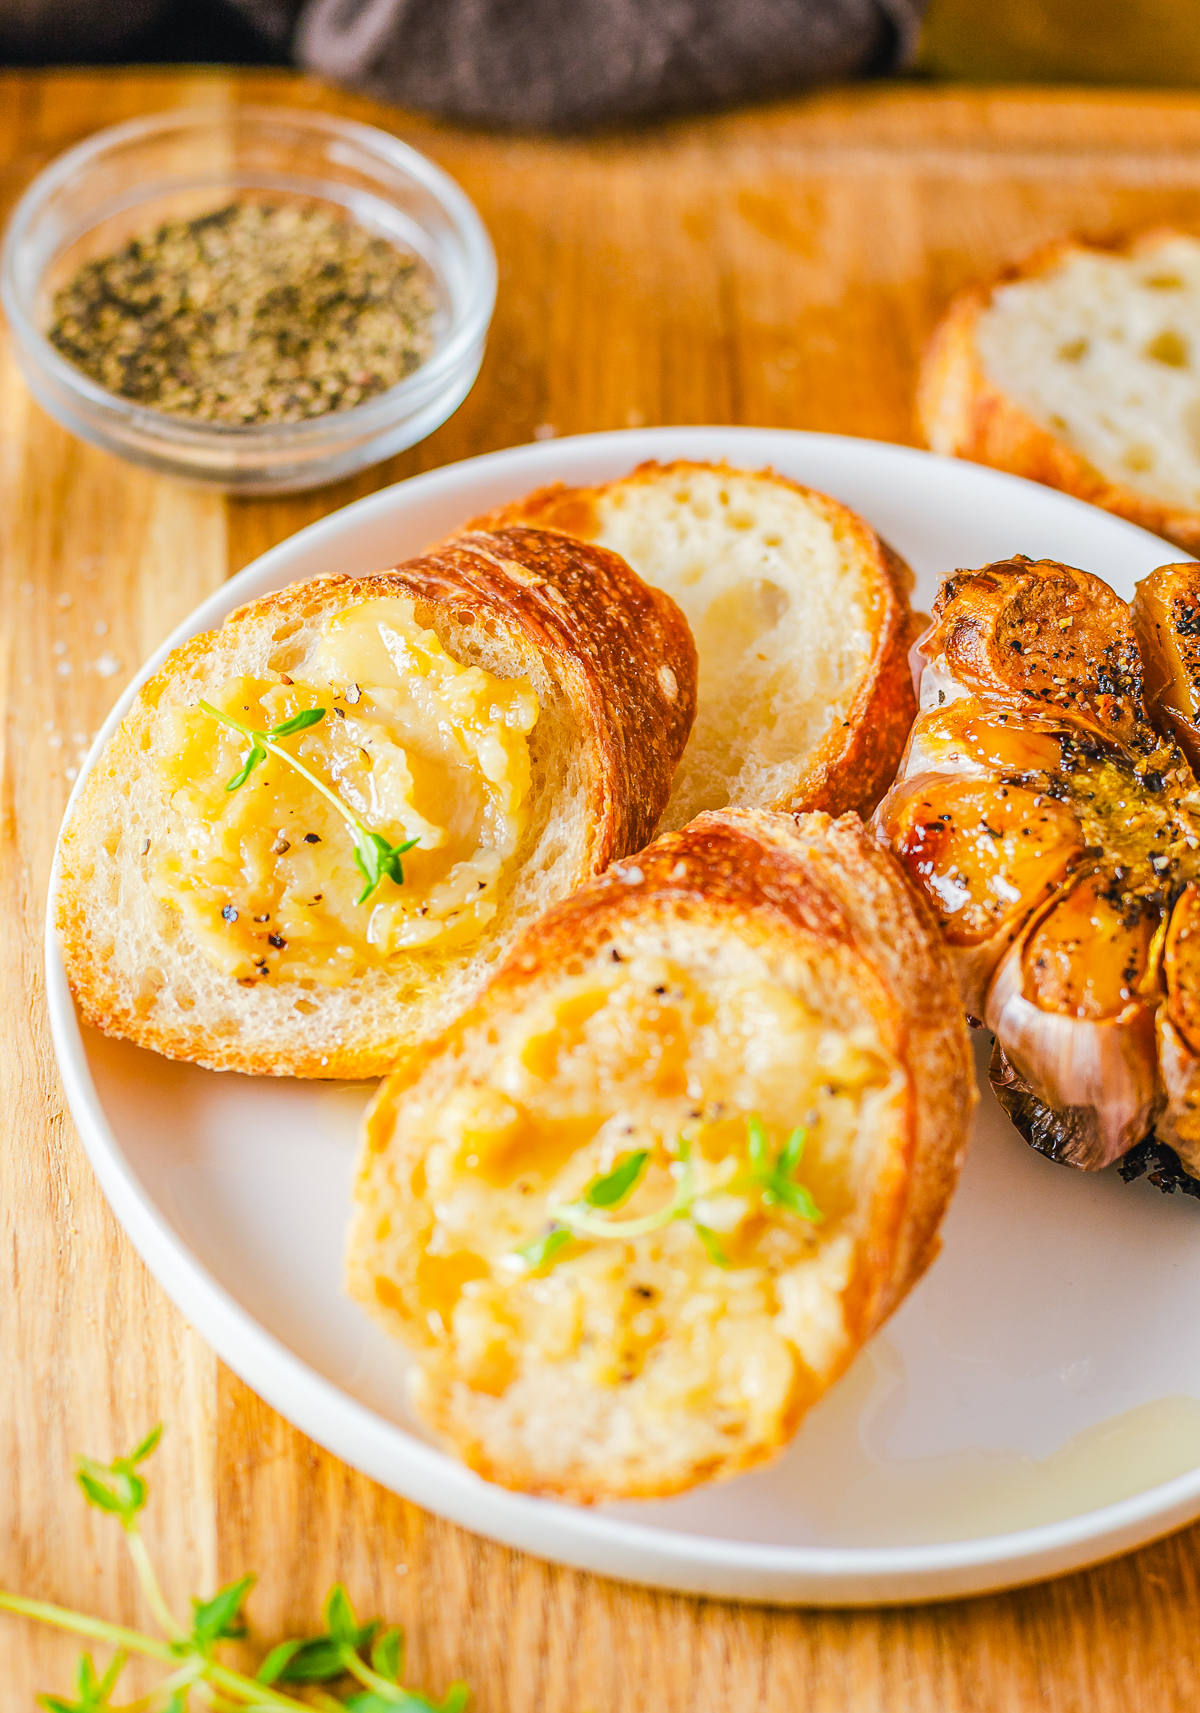 Roast Garlic Spread on slices of bread with a whole garlic on the side.